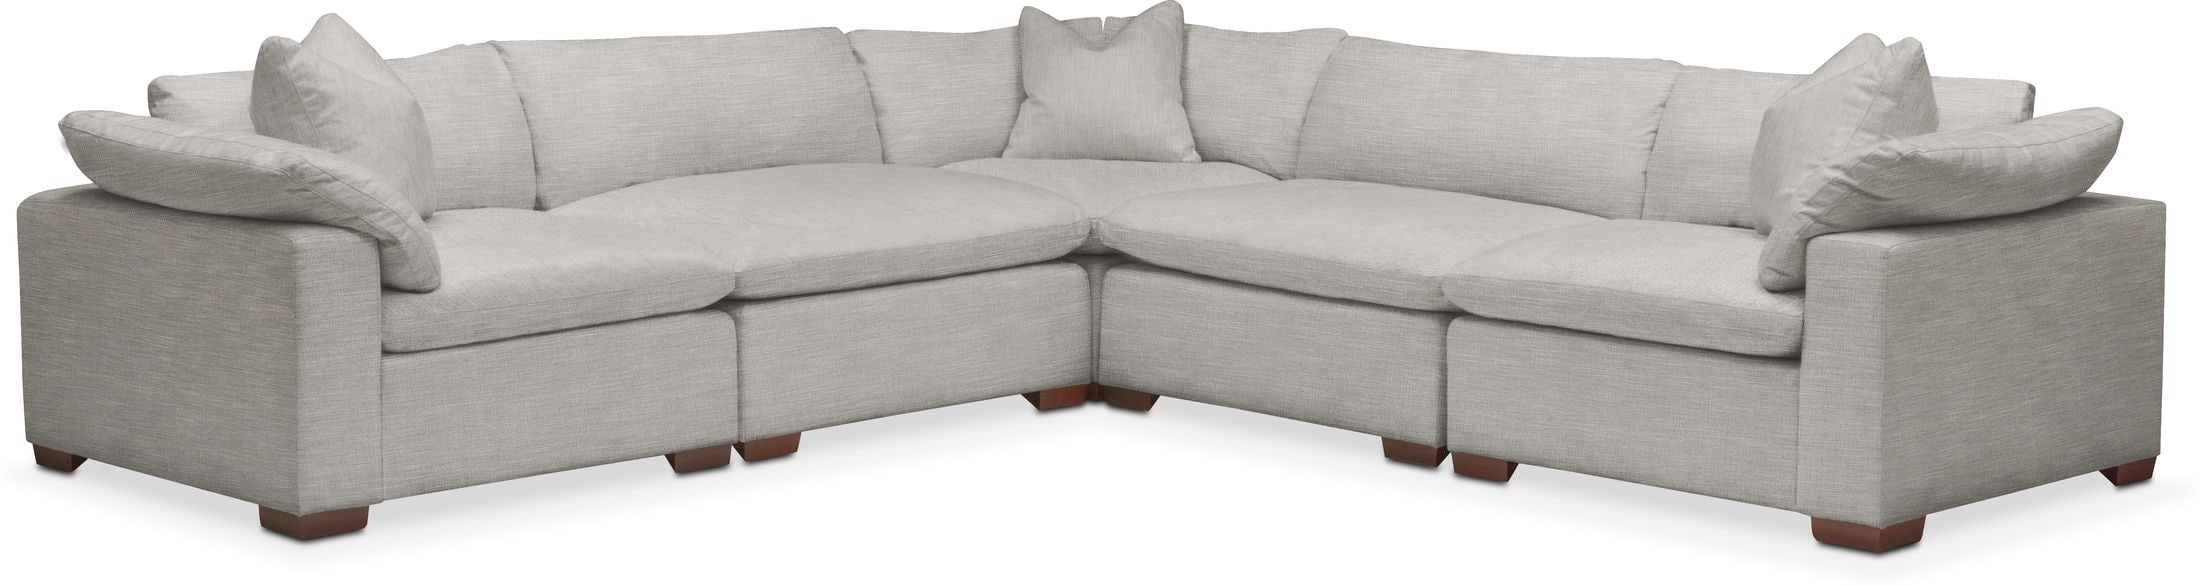 plush 5 piece sectional